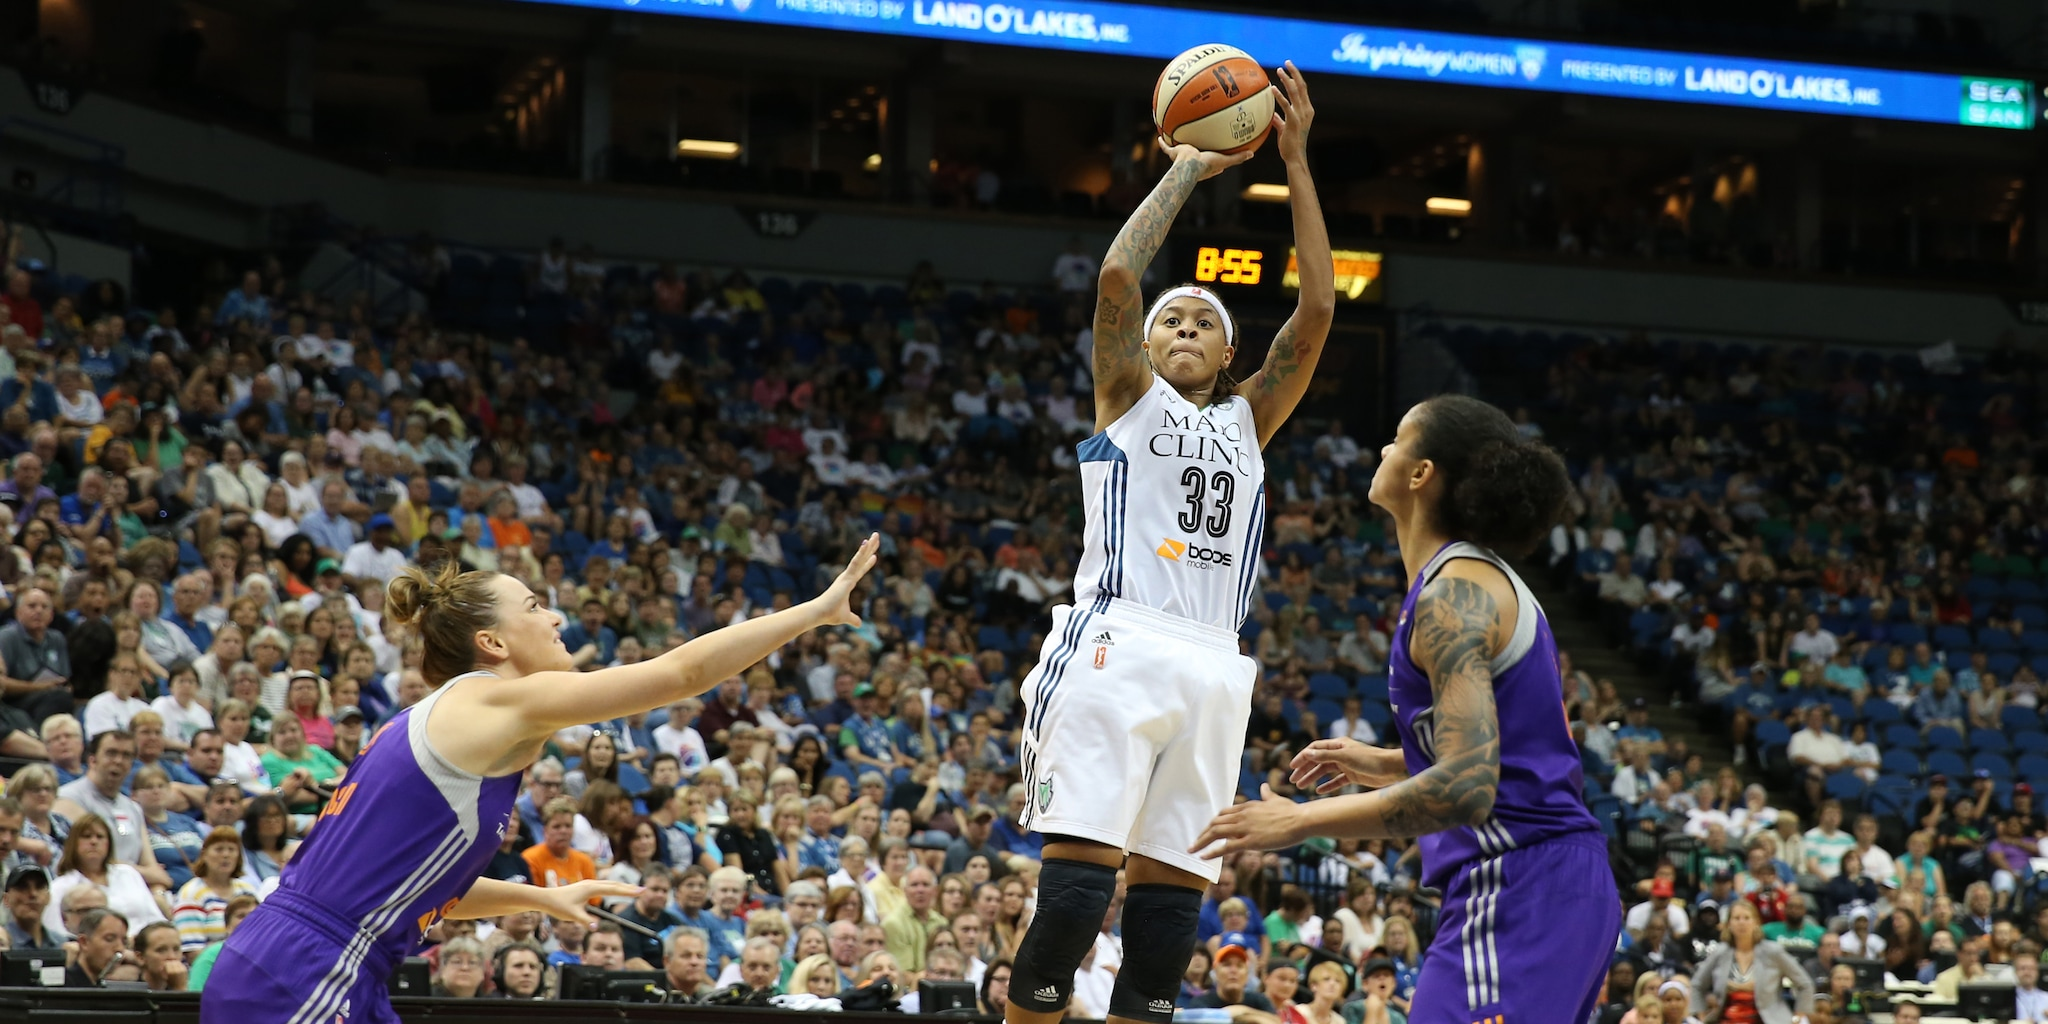 After a 24 point outburst against Seattle on Thursday night, Lynx guard Seimone Augustus cooled off a bit against the Mercury scoring just six points on 3-of-13 shooting.